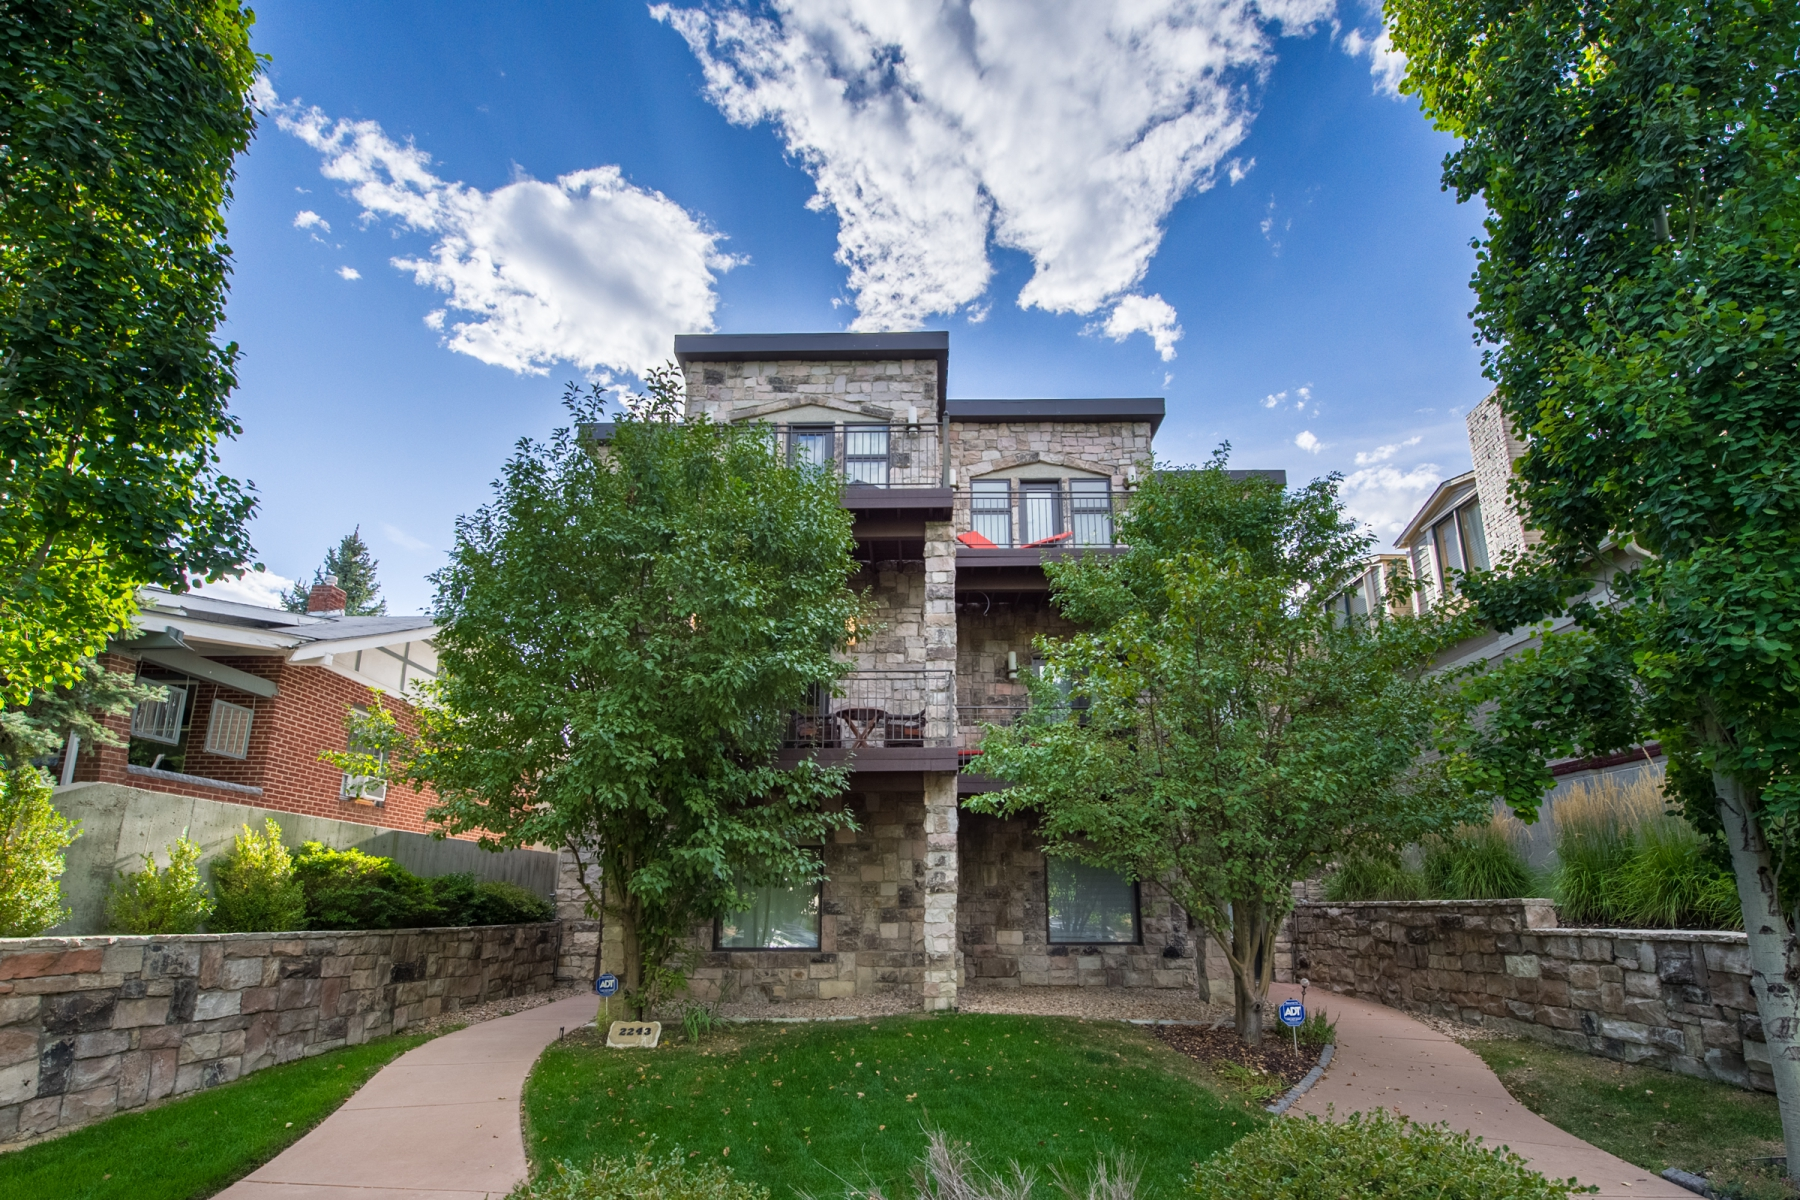 Property For Sale at Fabulous 3 Story Duplex in Sloans Lake